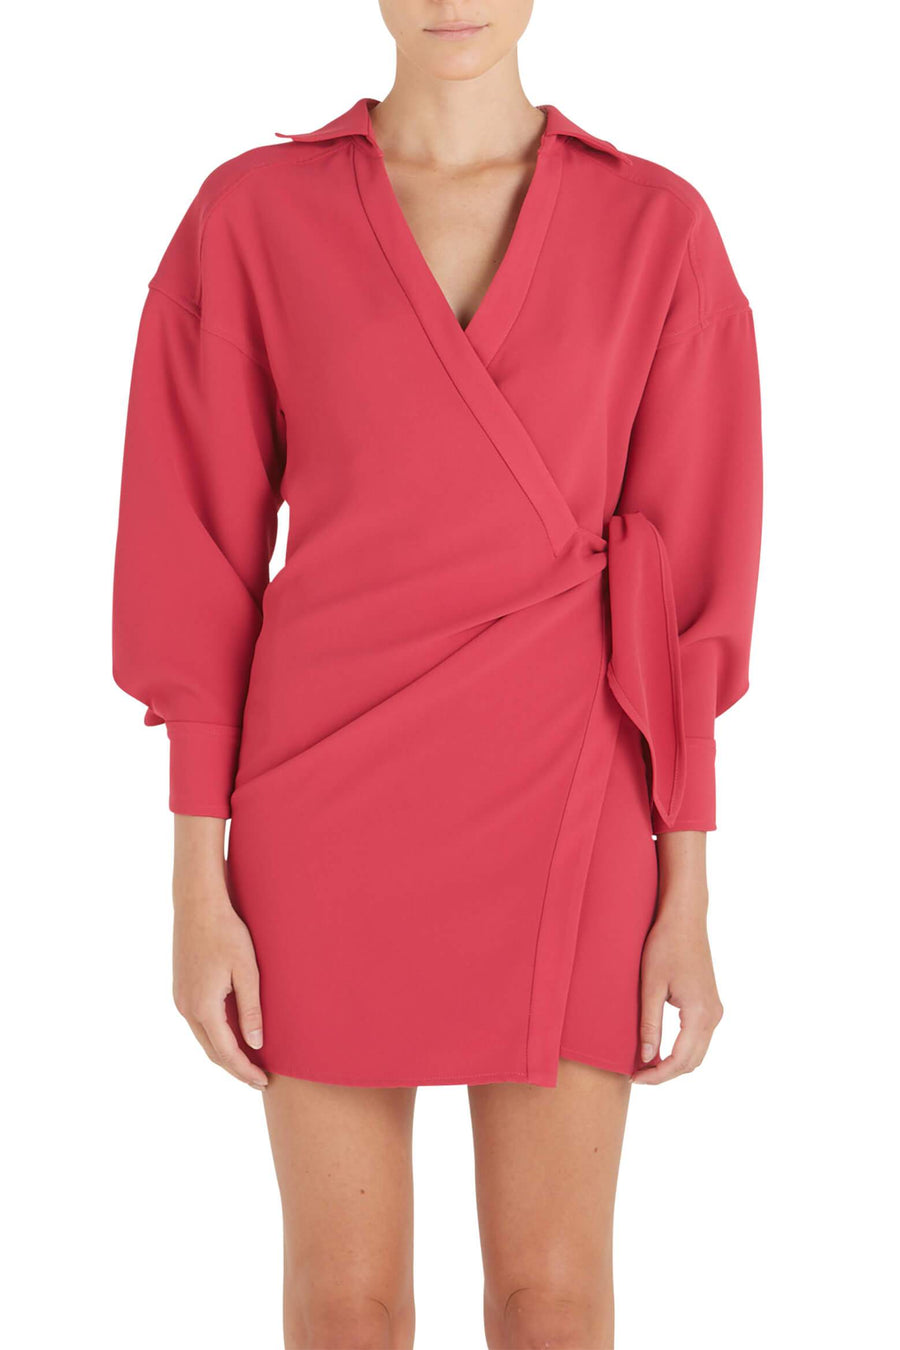 IRO Musea Dress in Fuchsia from The New Trend